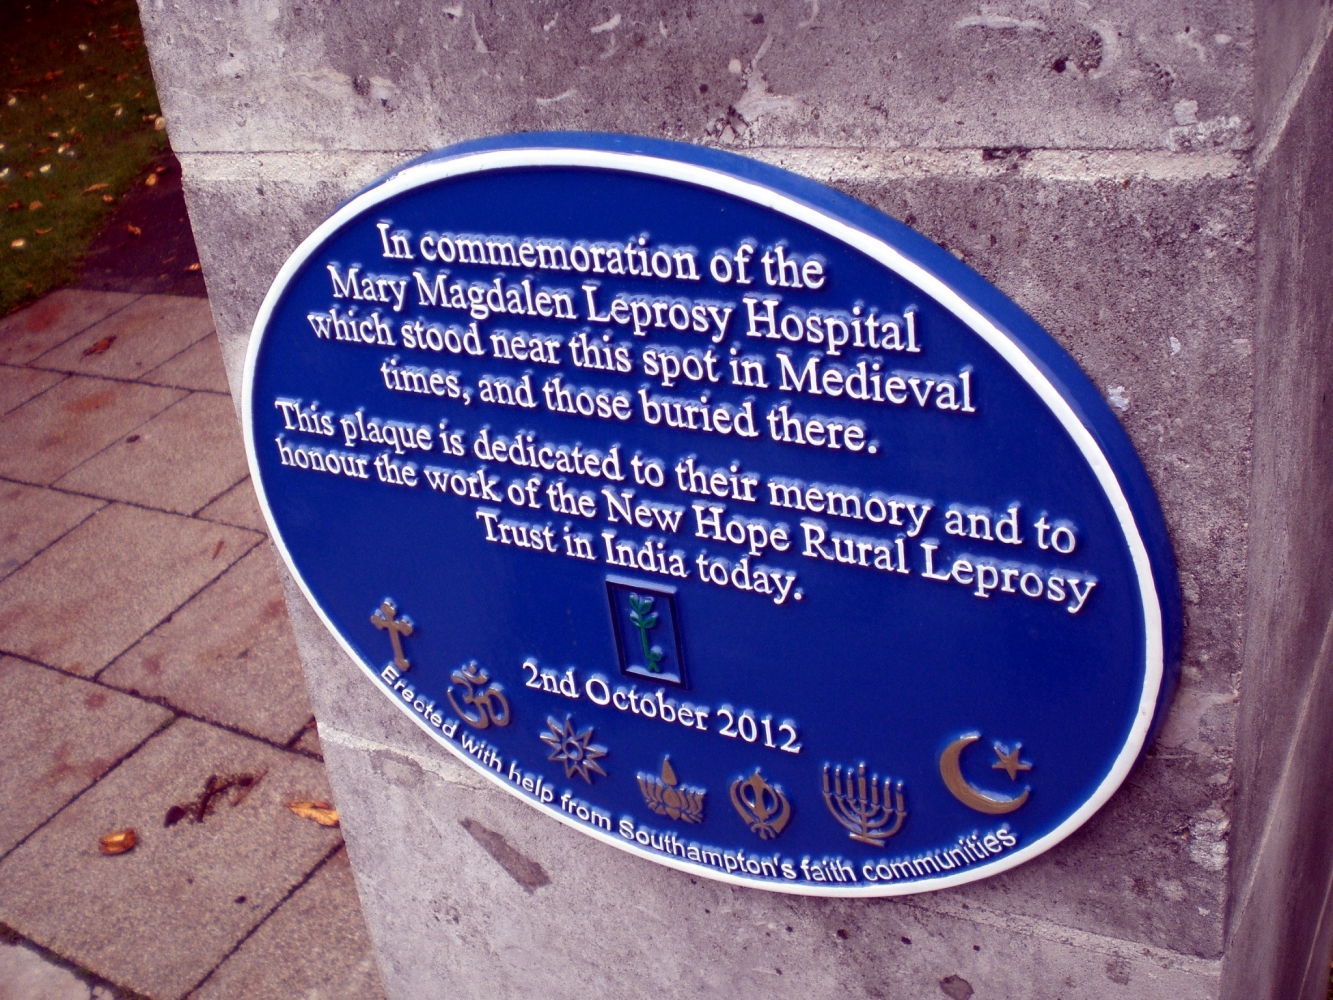 The new plaque placed on 2nd October 2012. Image Will Temple.